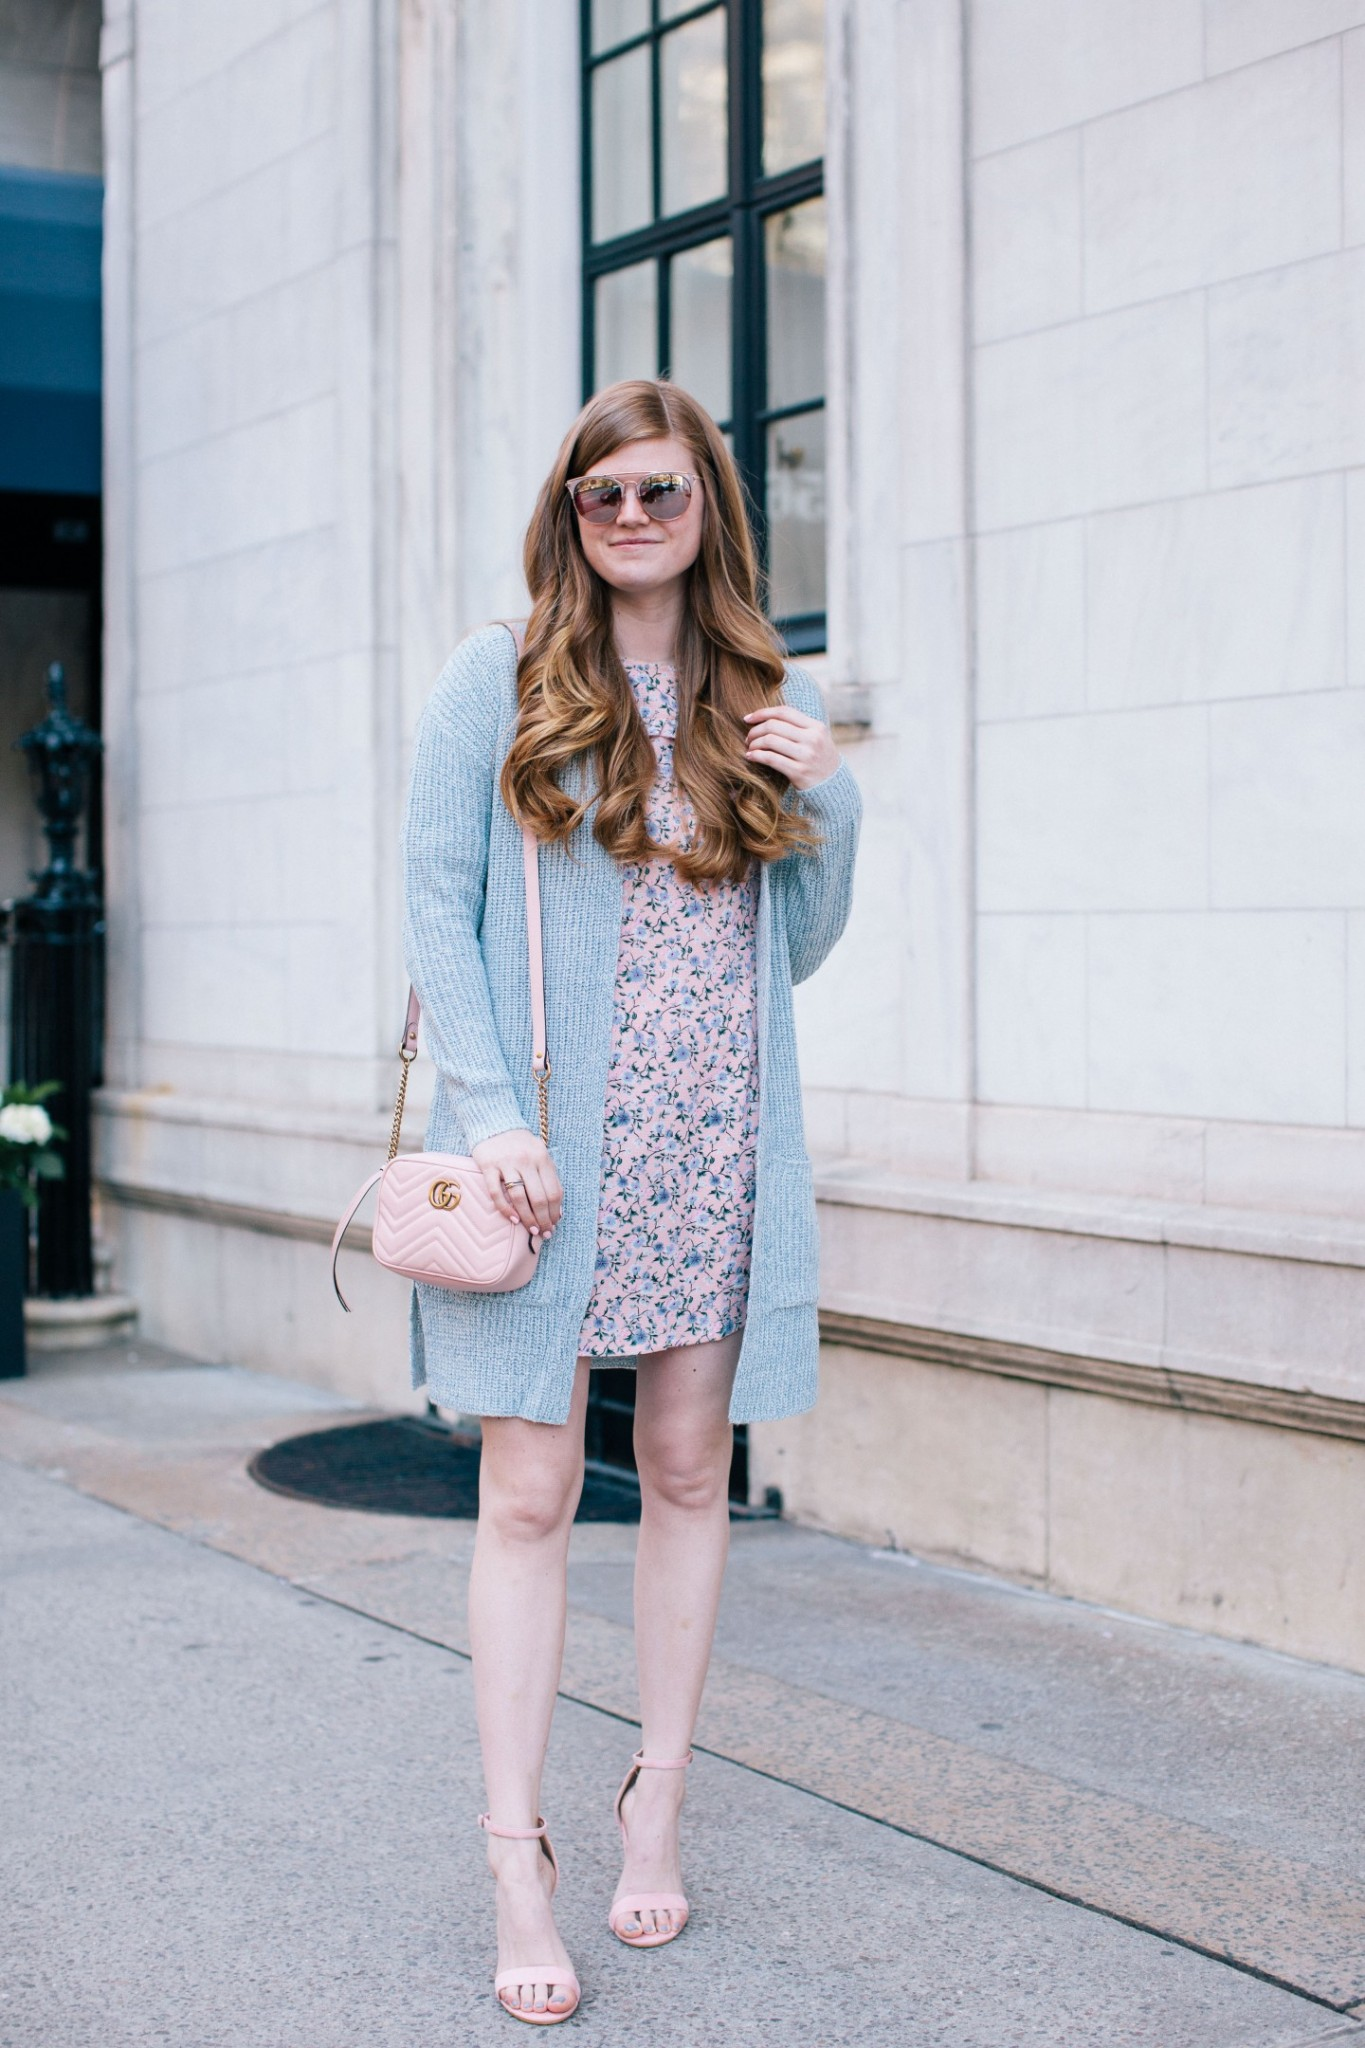 Lifestyle blogger Mollie Sheperdson shares a spring look with Boohoo